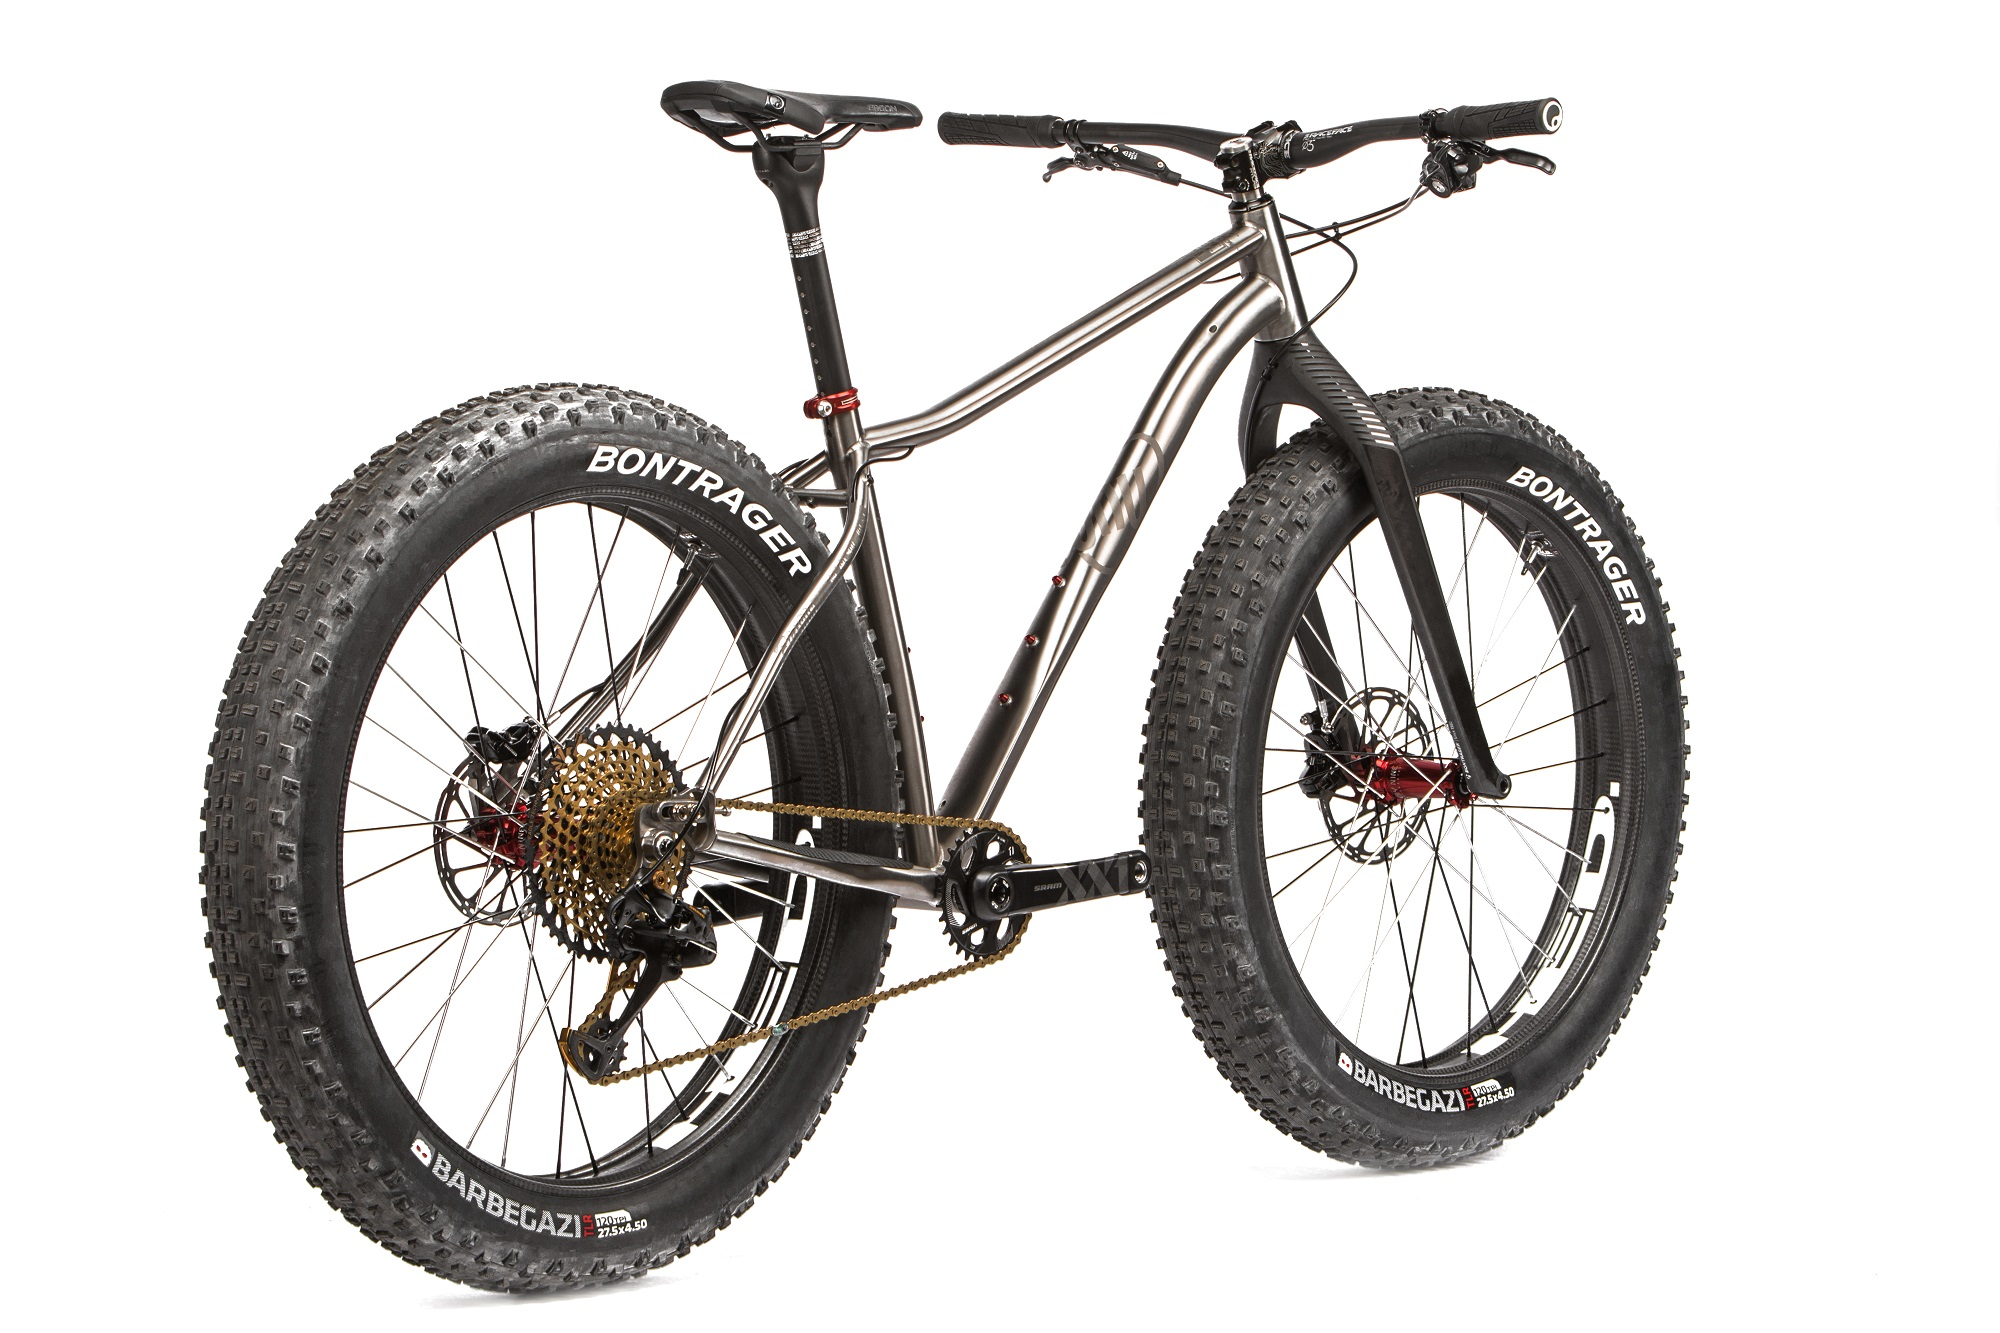 Big Iron - Why Cycles